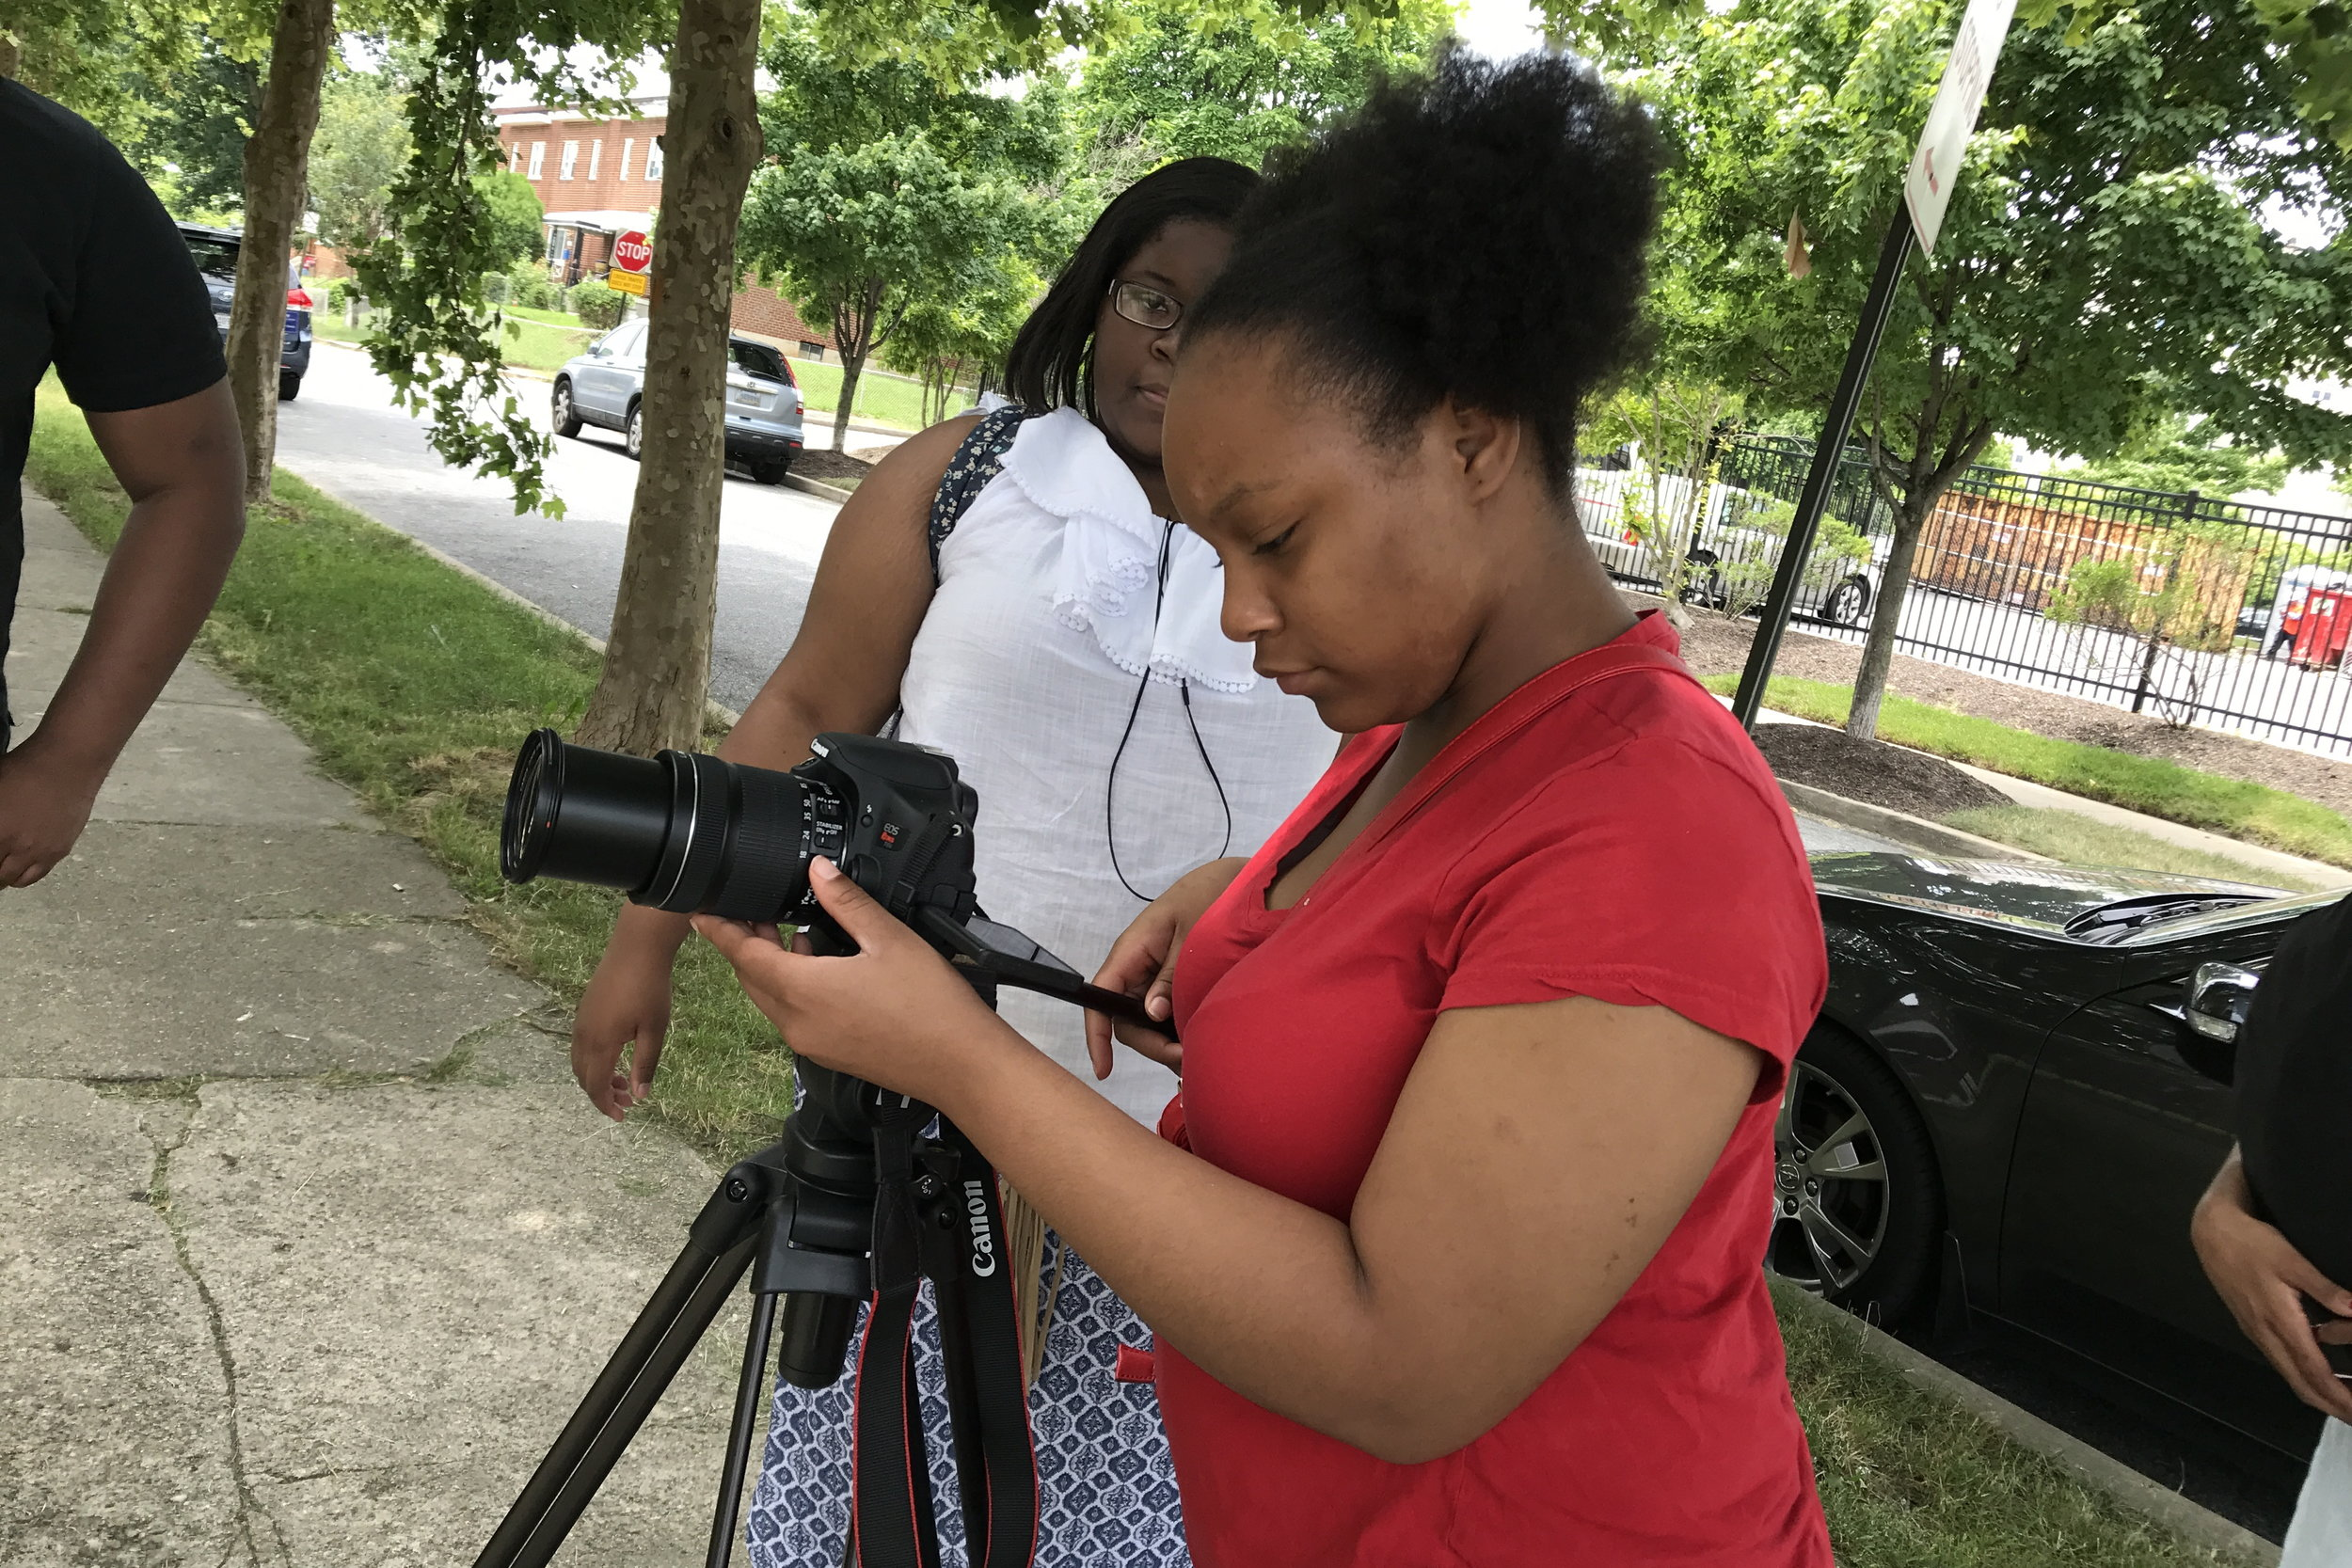 Essay to Film: Personal Stories of Empowerment